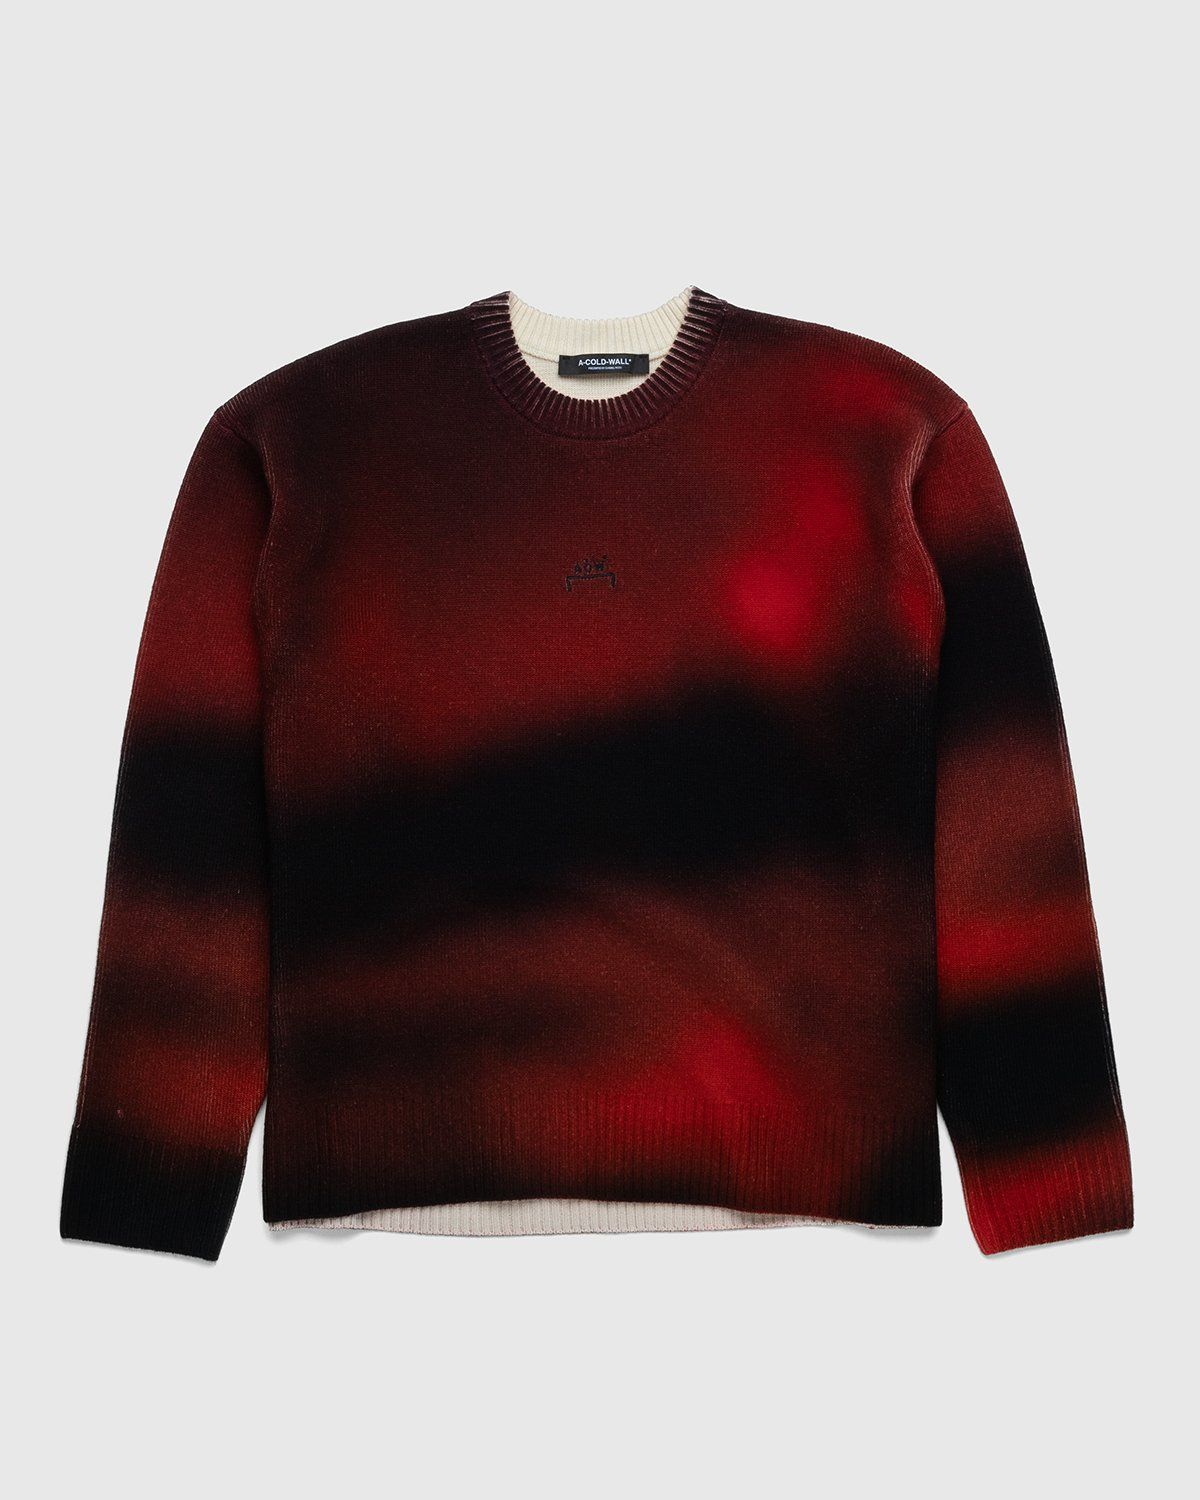 A-COLD-WALL* – Digital Print Knit Red - Image 1